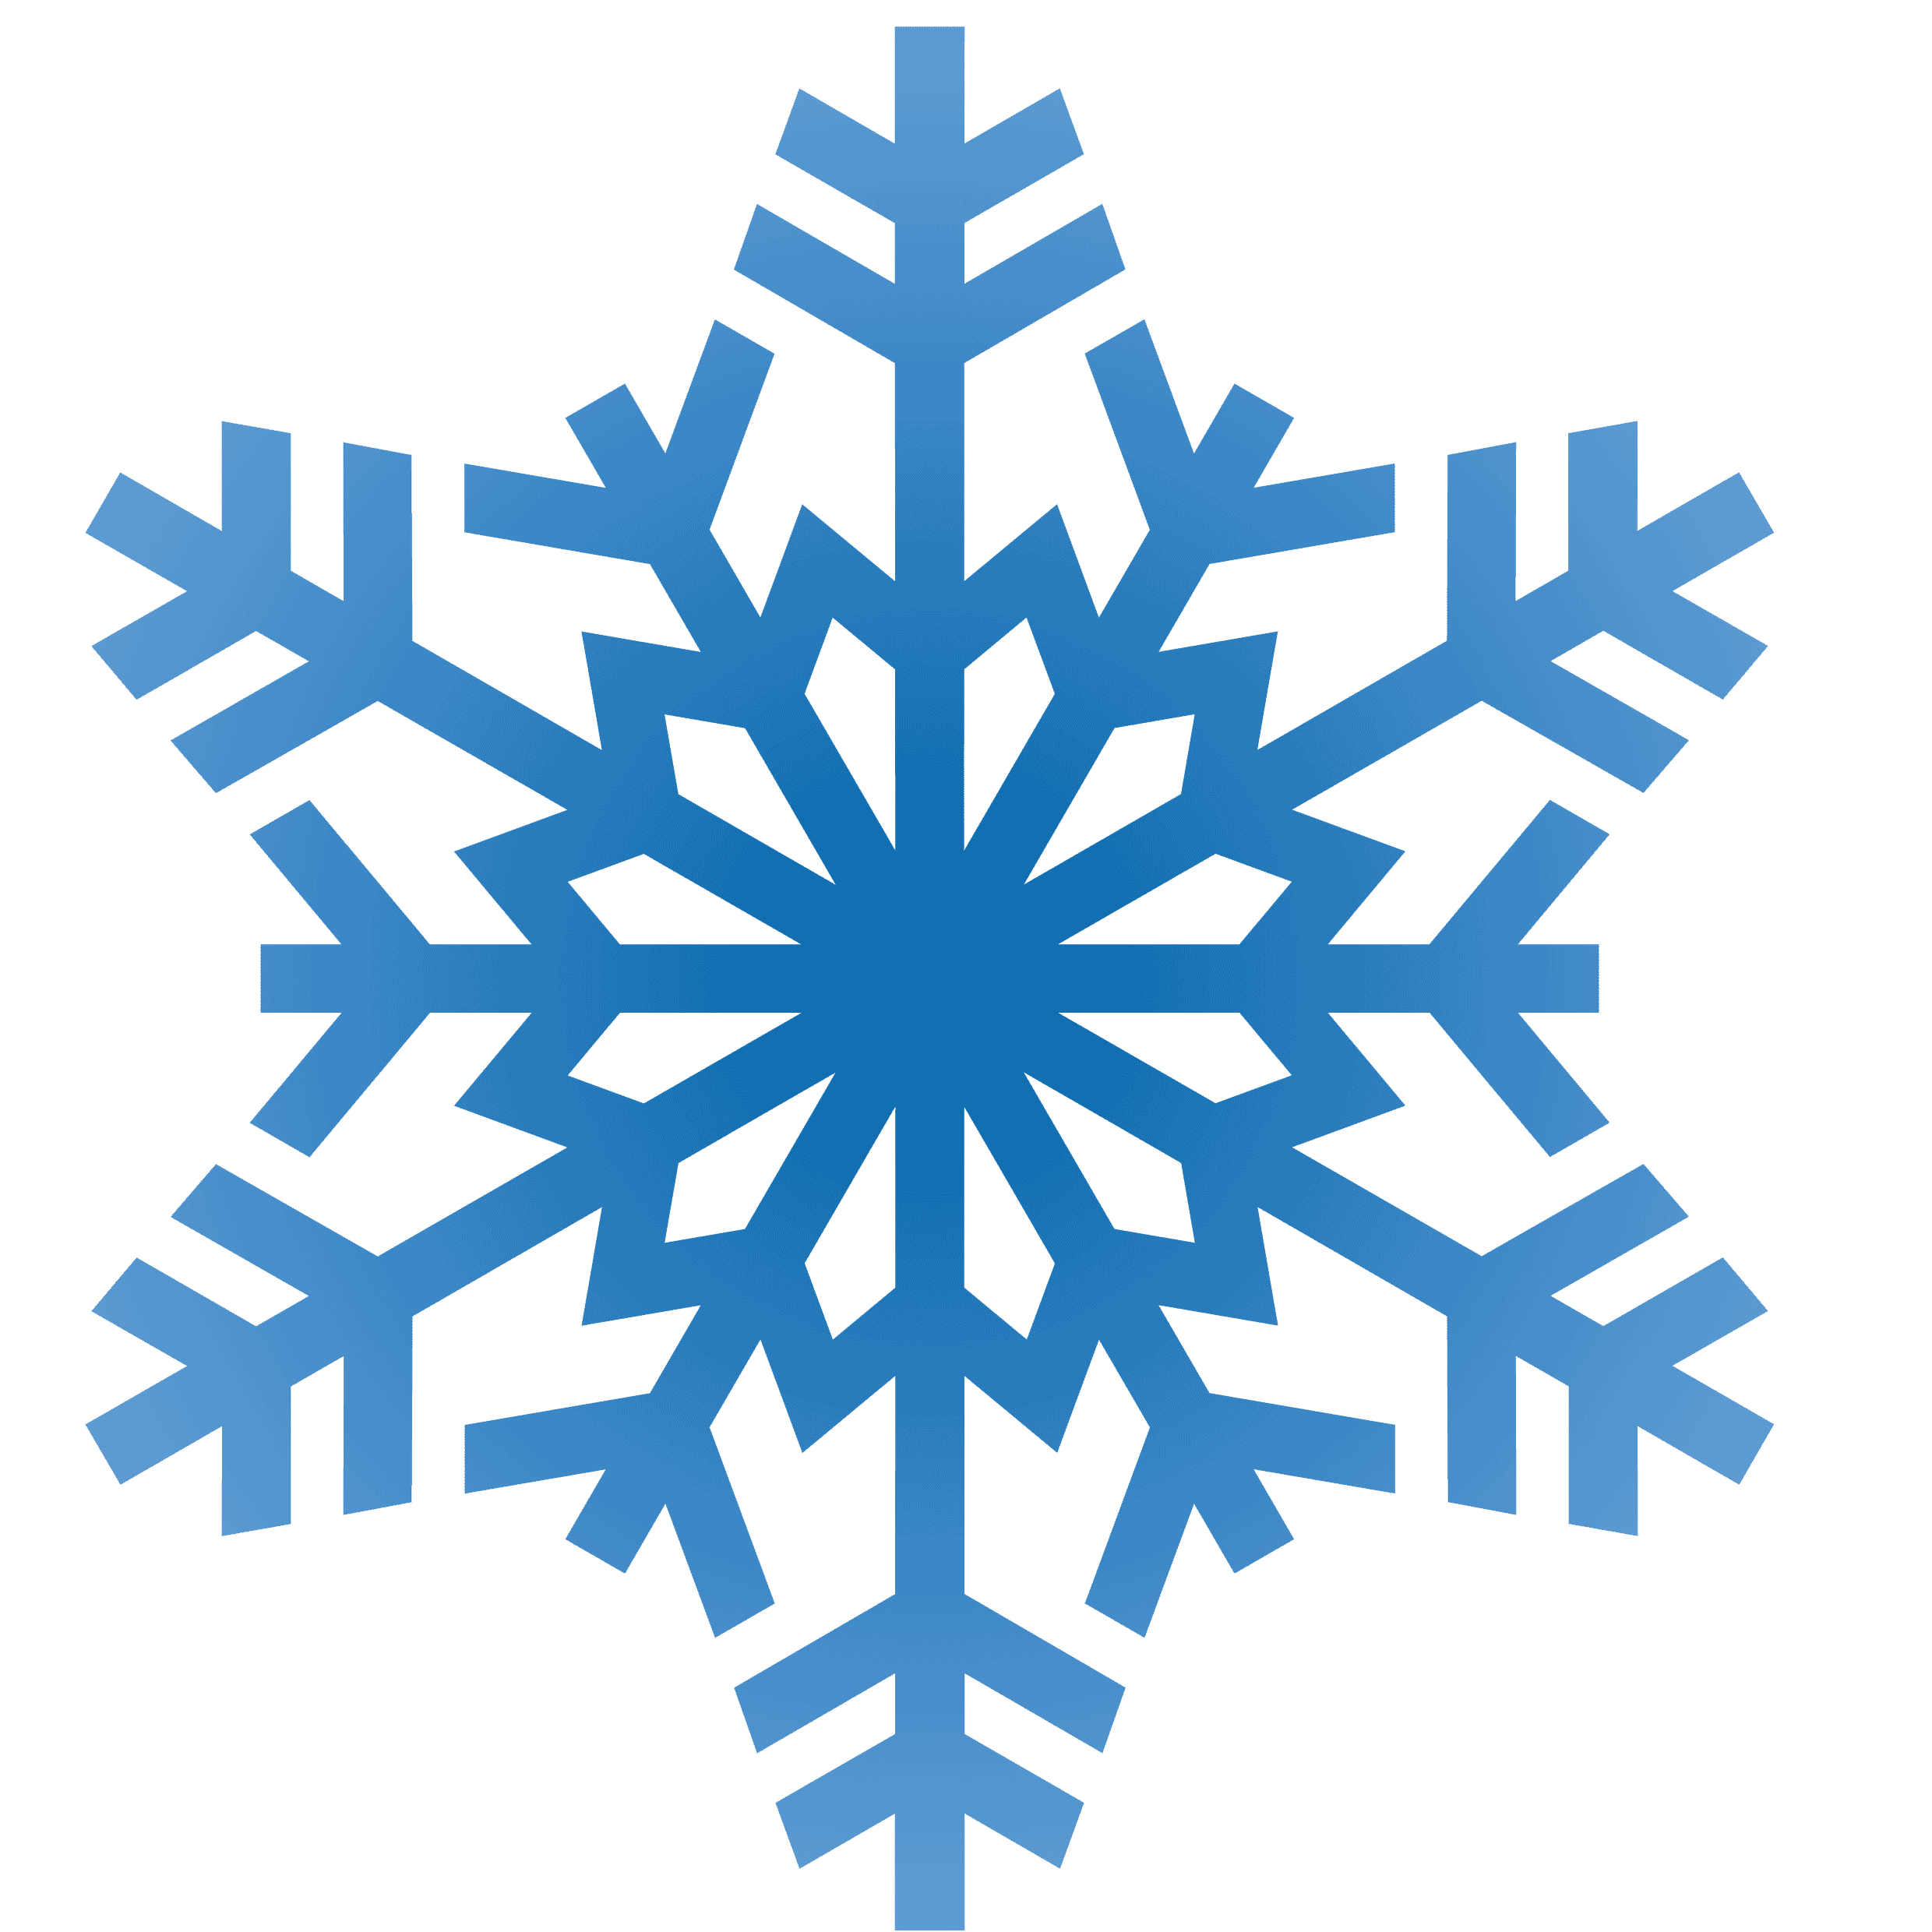 Snowflake Clipart Transparent Background Free